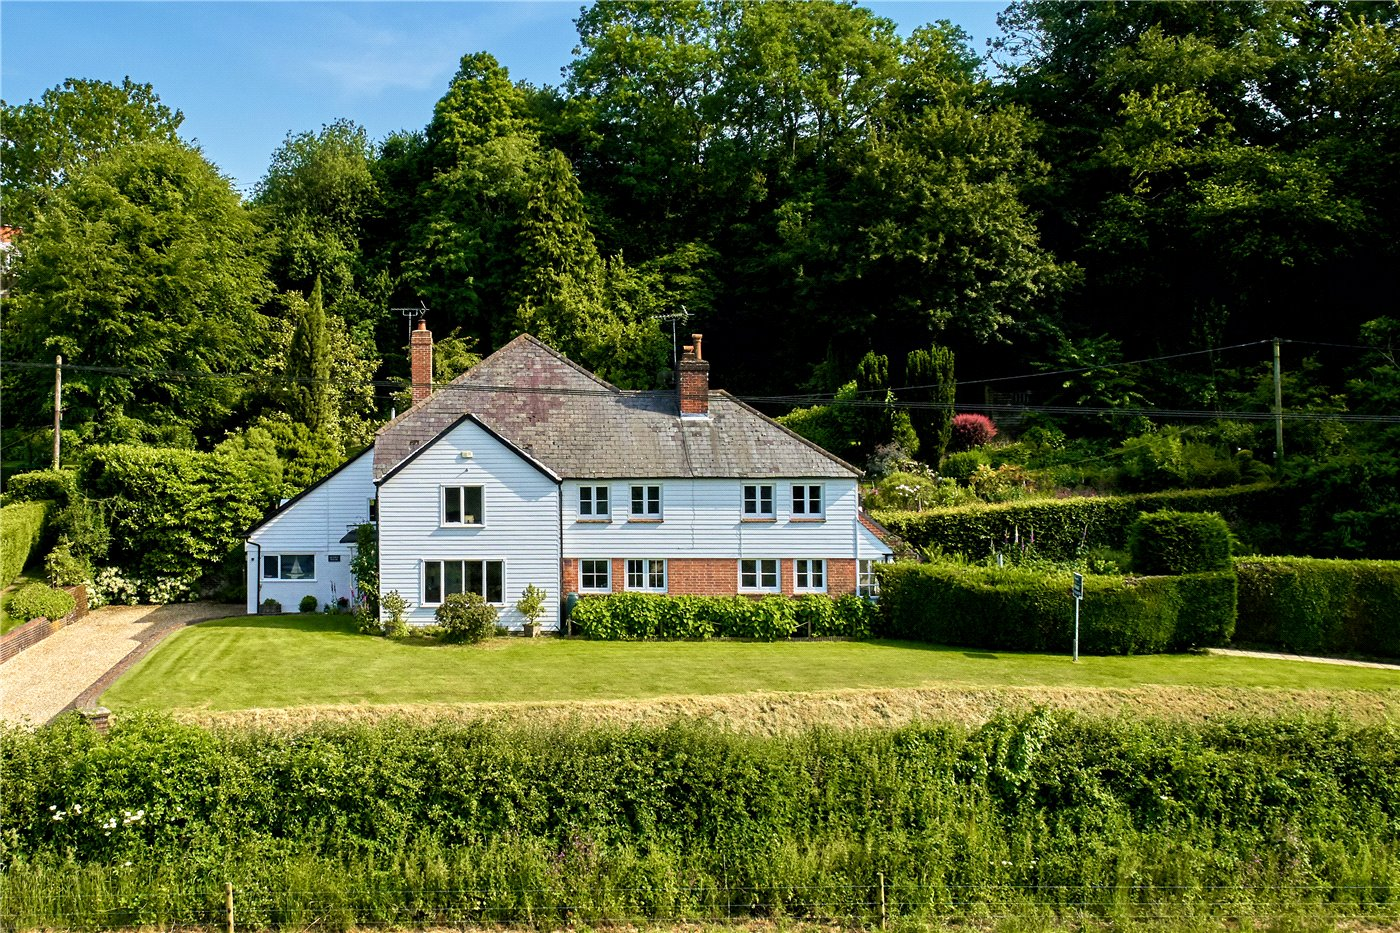 A five-bedroom house near Petersfield and within the South Downs national park.